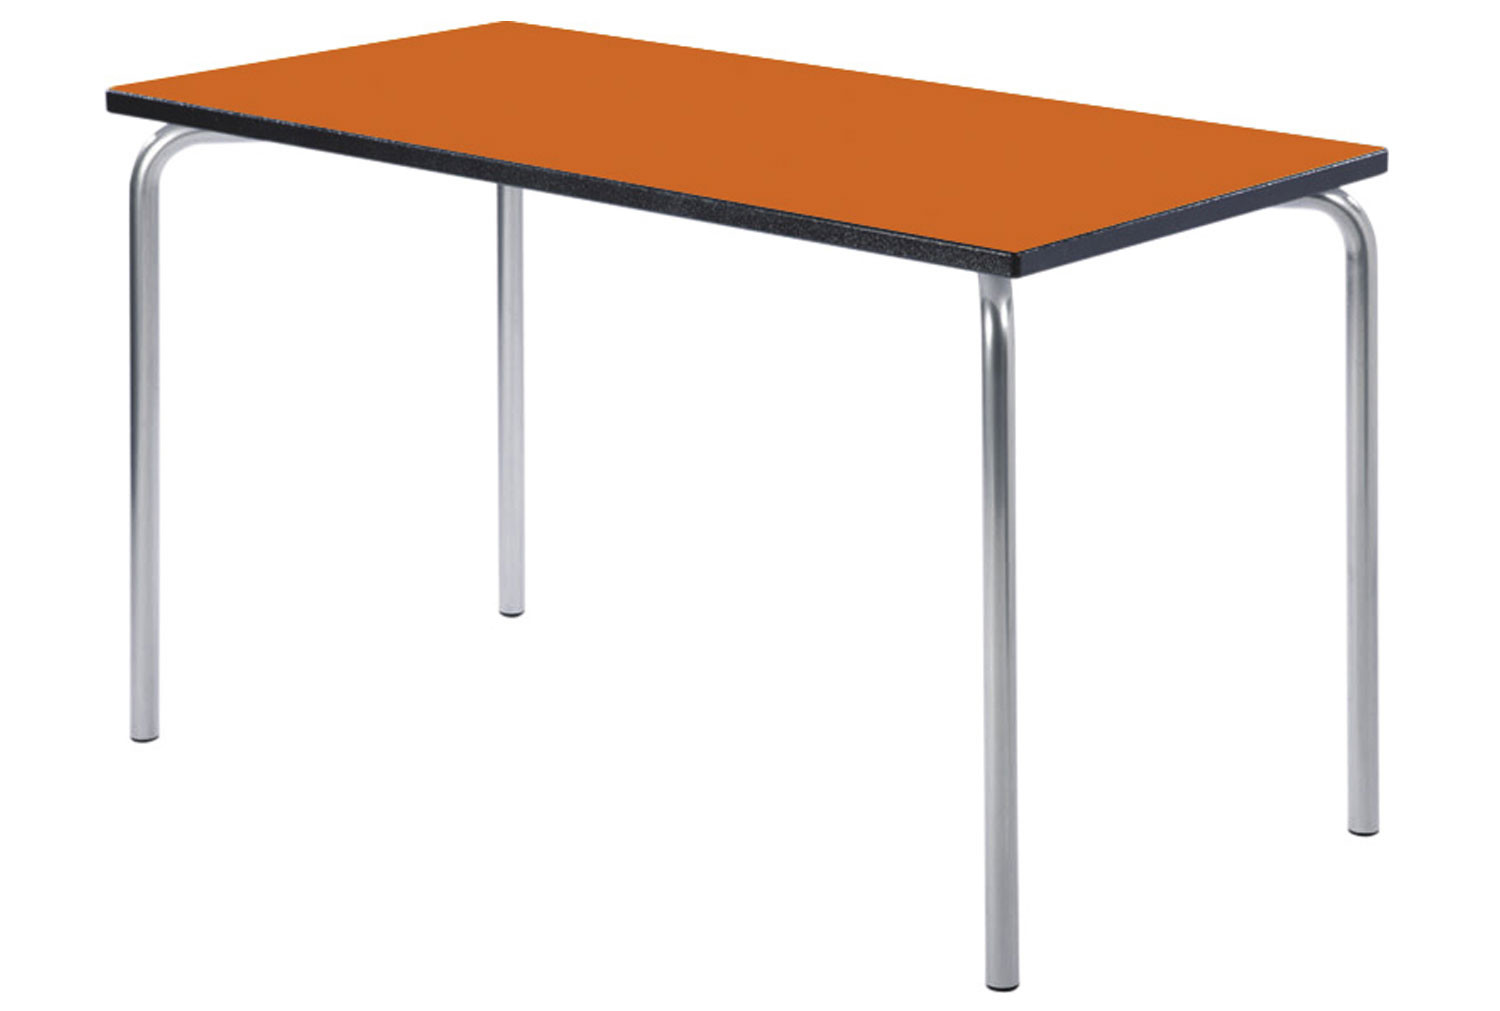 Equation Rectangular Classroom Tables 3-4 Years